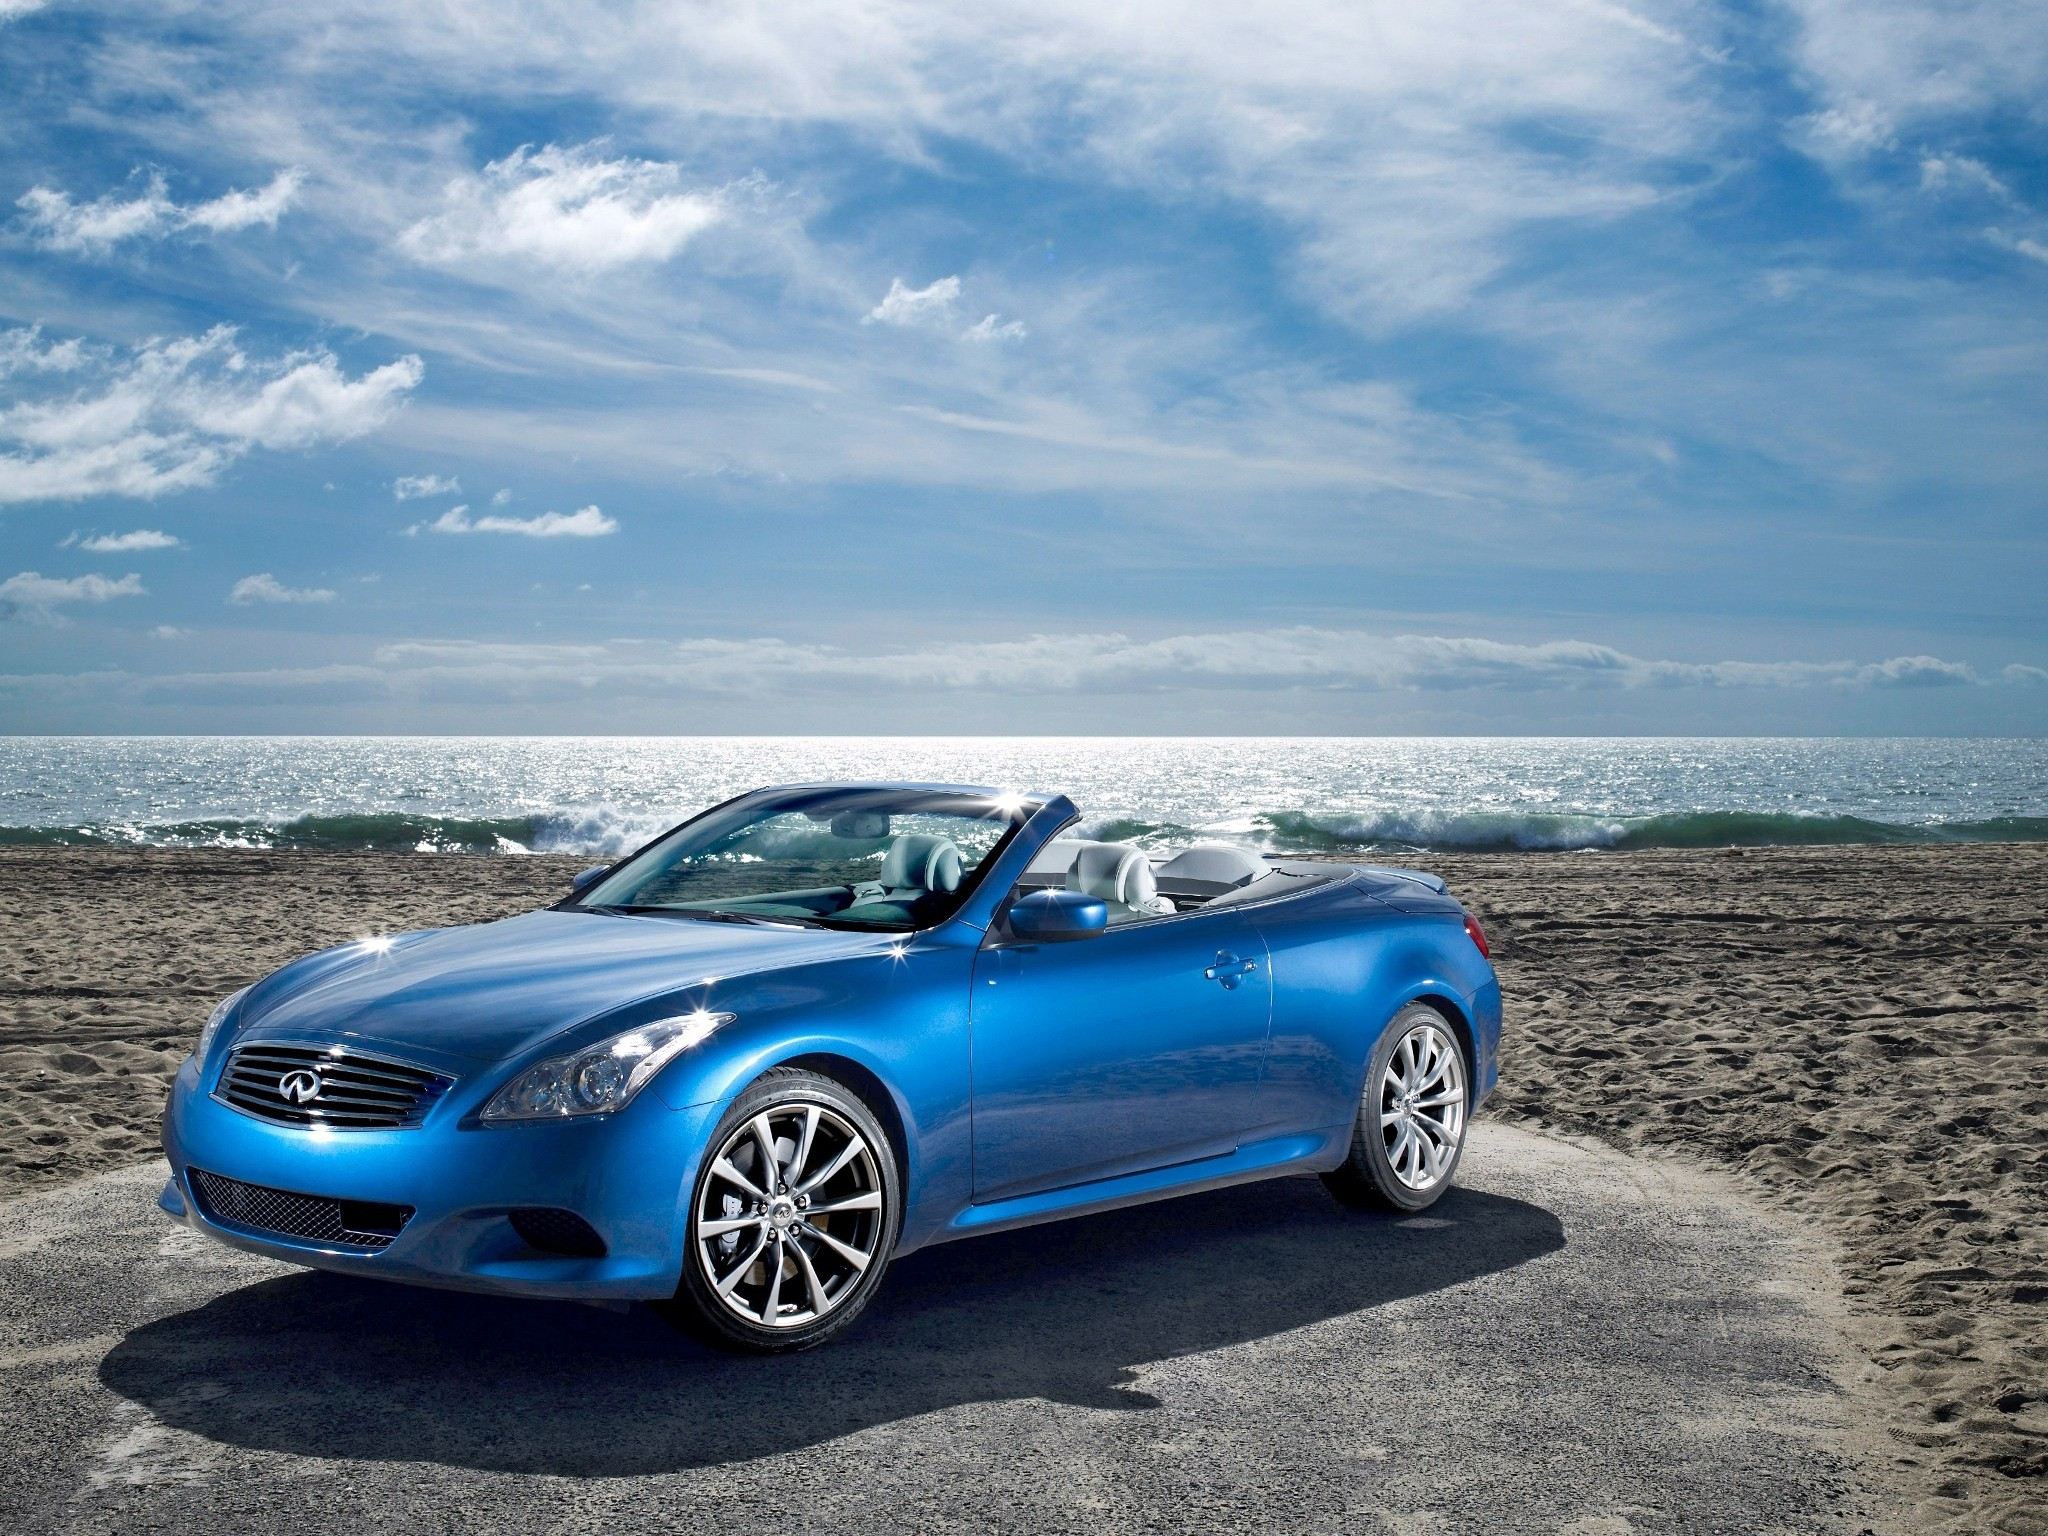 infiniti g37 convertible by - photo #49